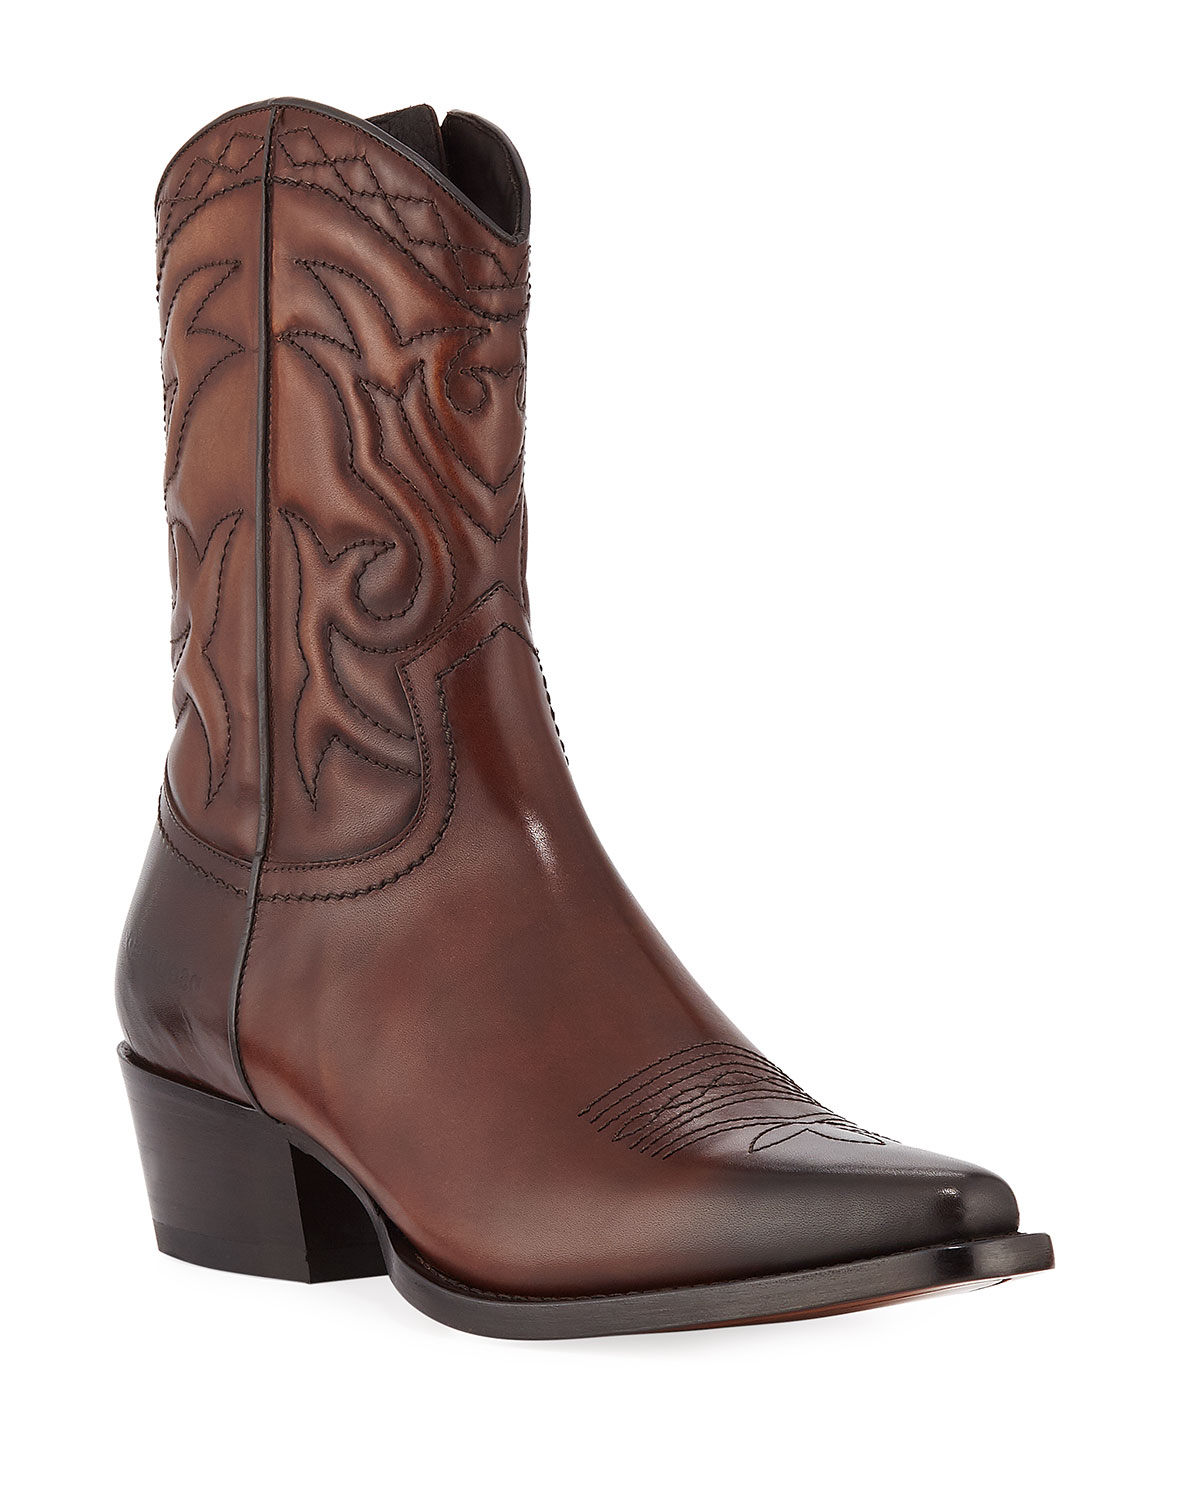 Men's Leather Western Cowboy Boots